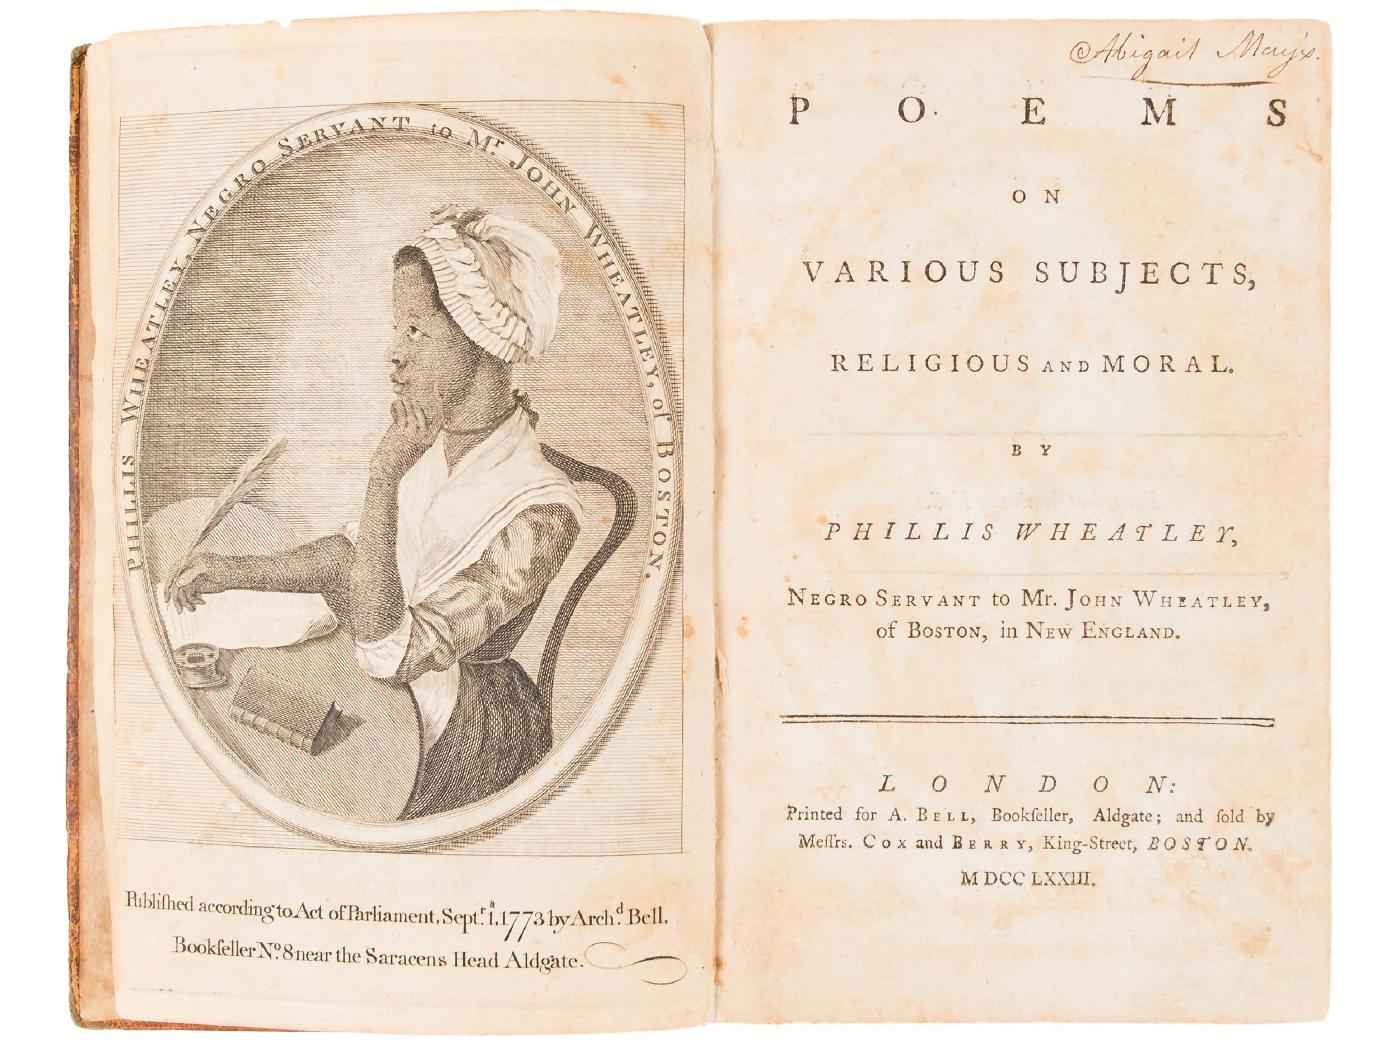 Engraving of Phillis Wheatley from her book, *Poems on Various Subjects, Religious and Moral*